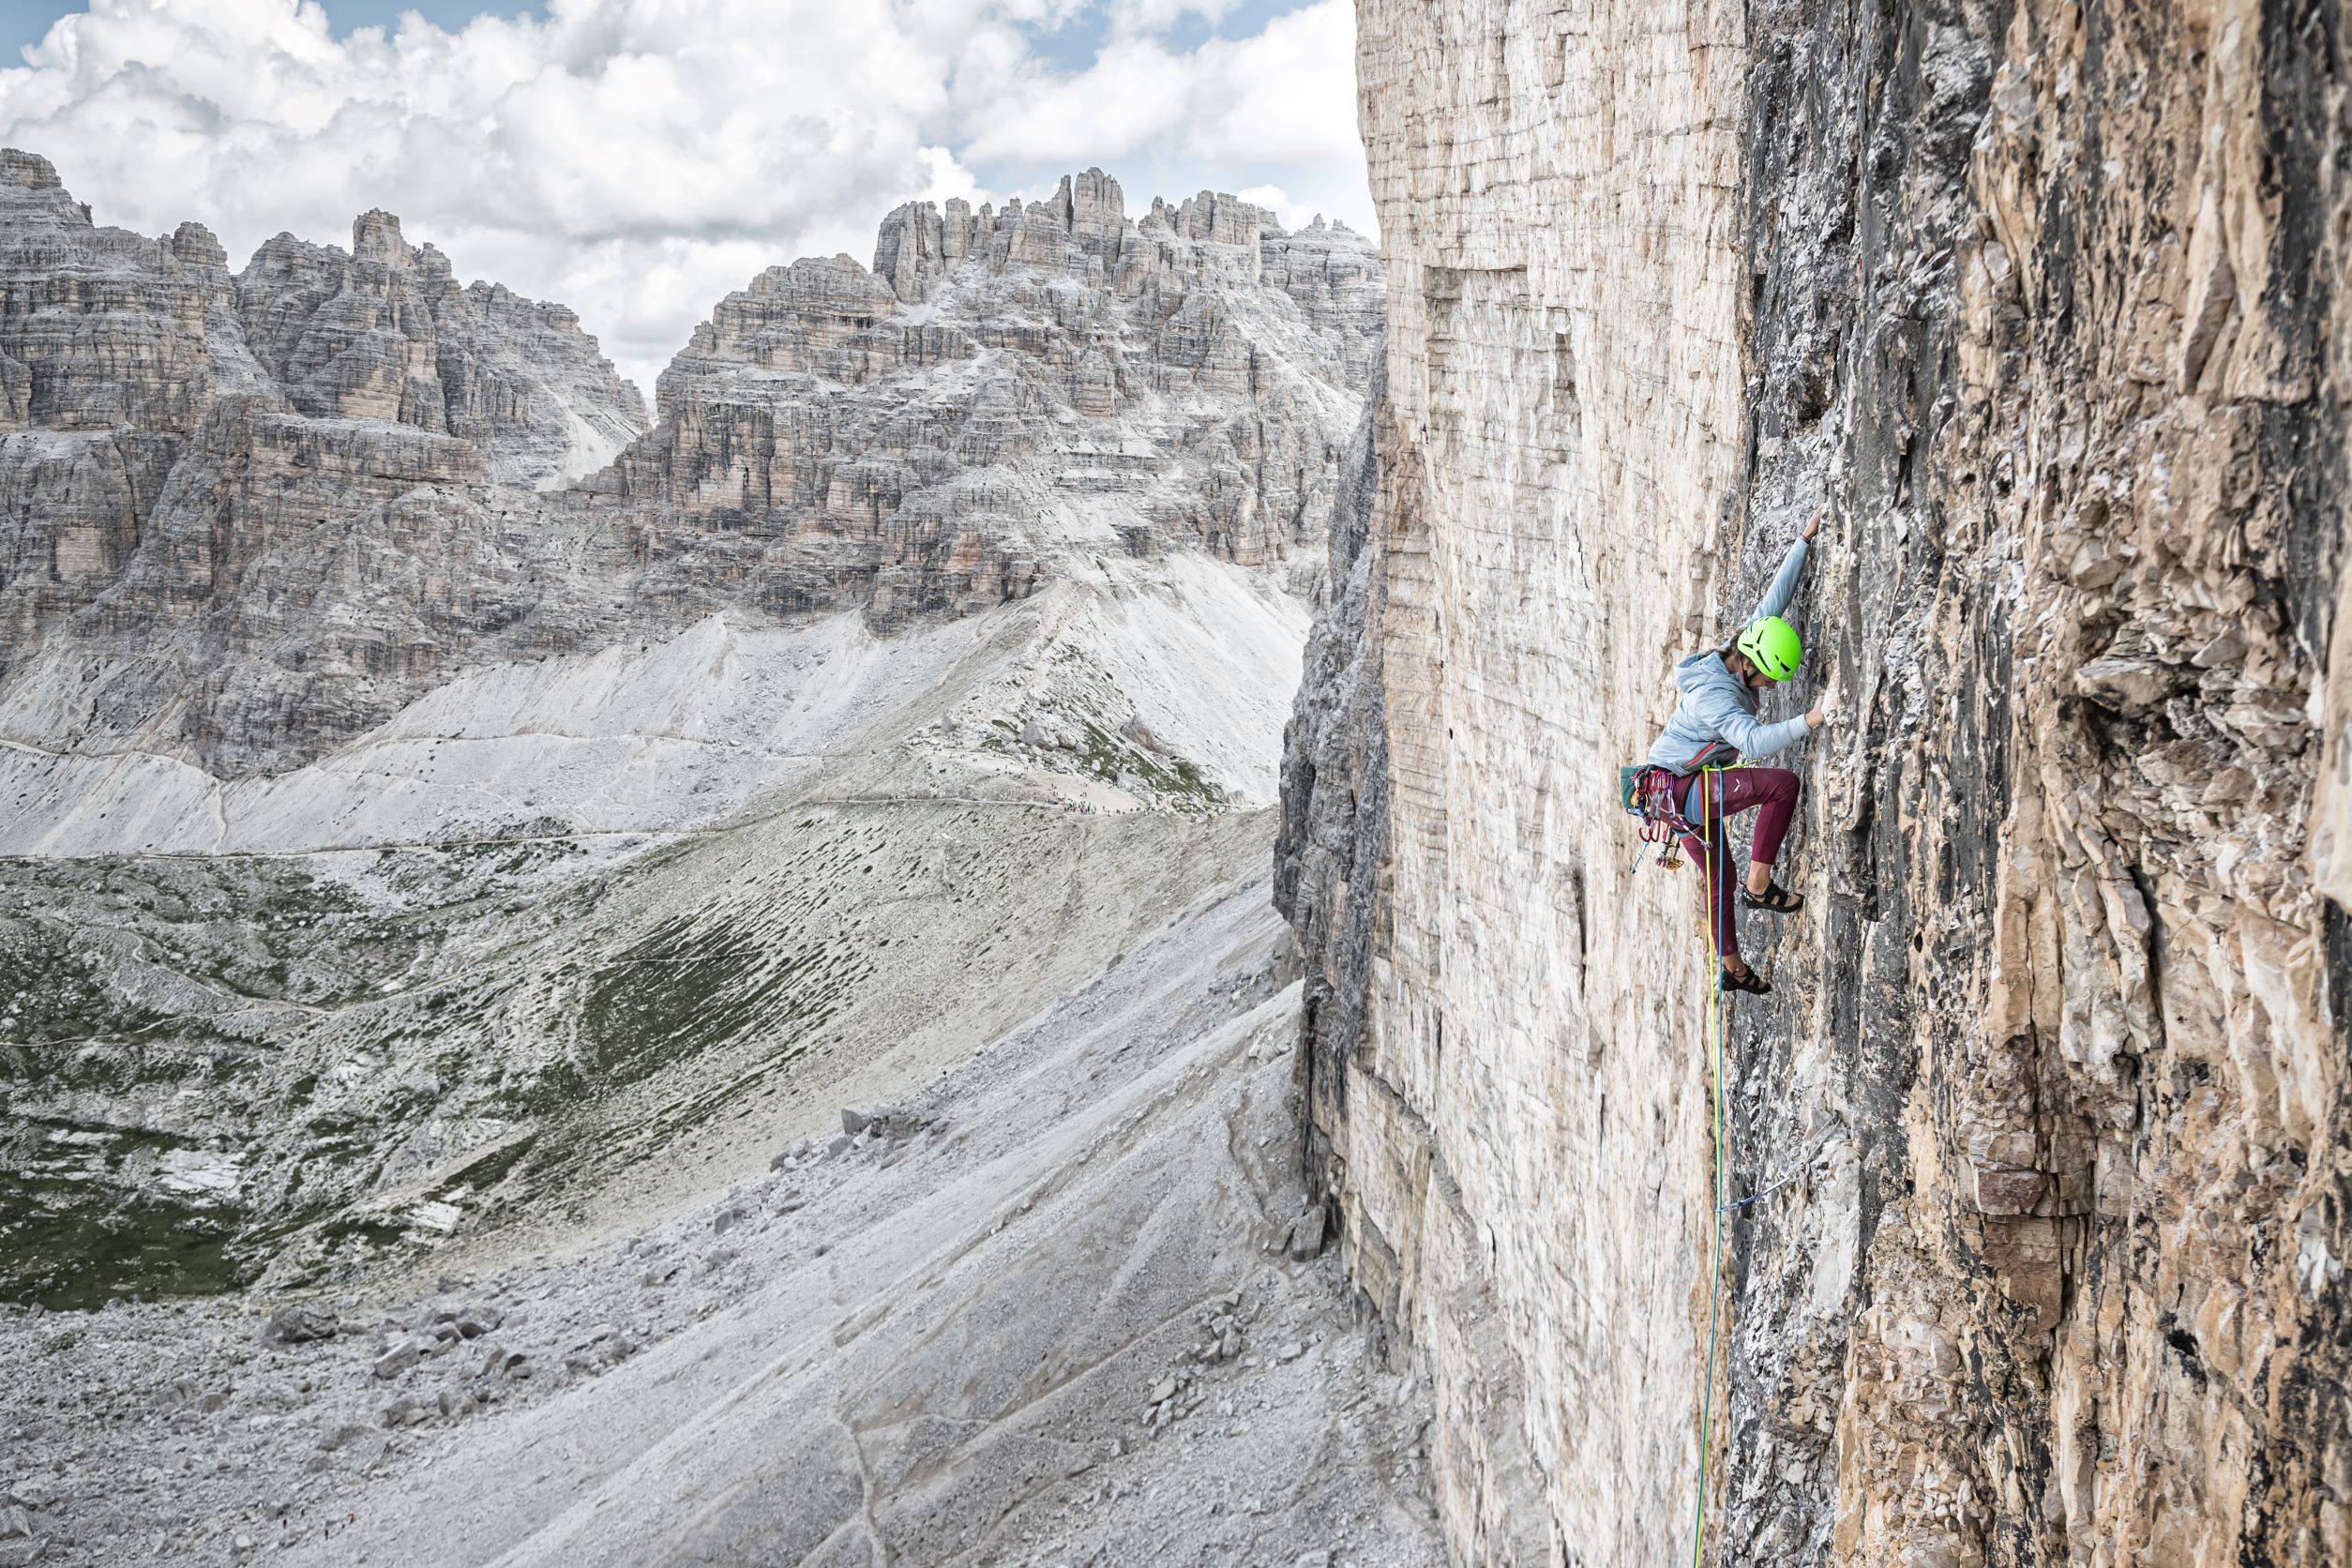 Eline Le Menestrel looks down at her foot while climbing on a bigwall in the Dolomites. The mountains are in the background